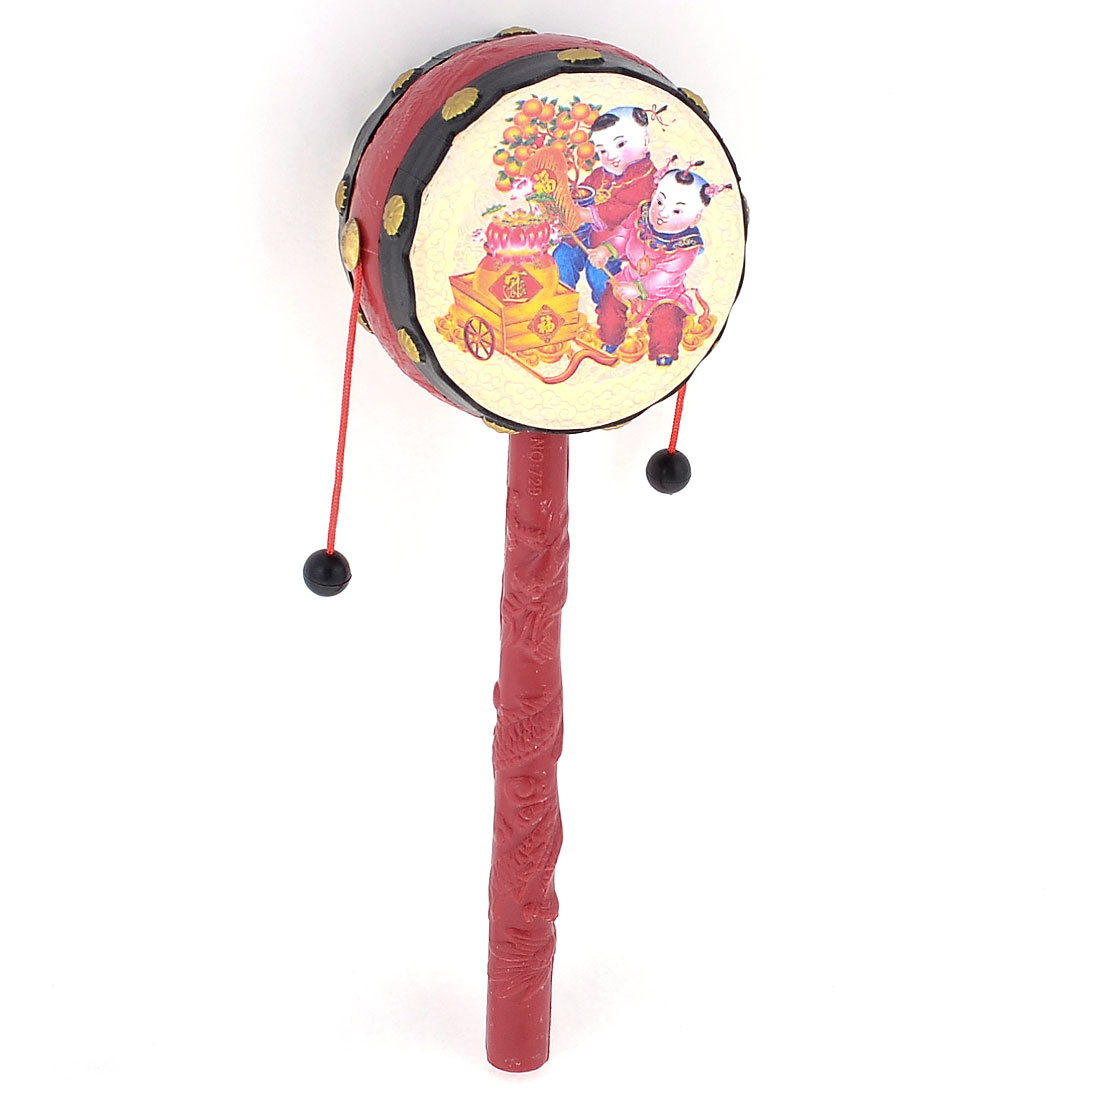 Tradition Chinese Kids Printed Handshake Music Rattle Drum Red Beige for Baby